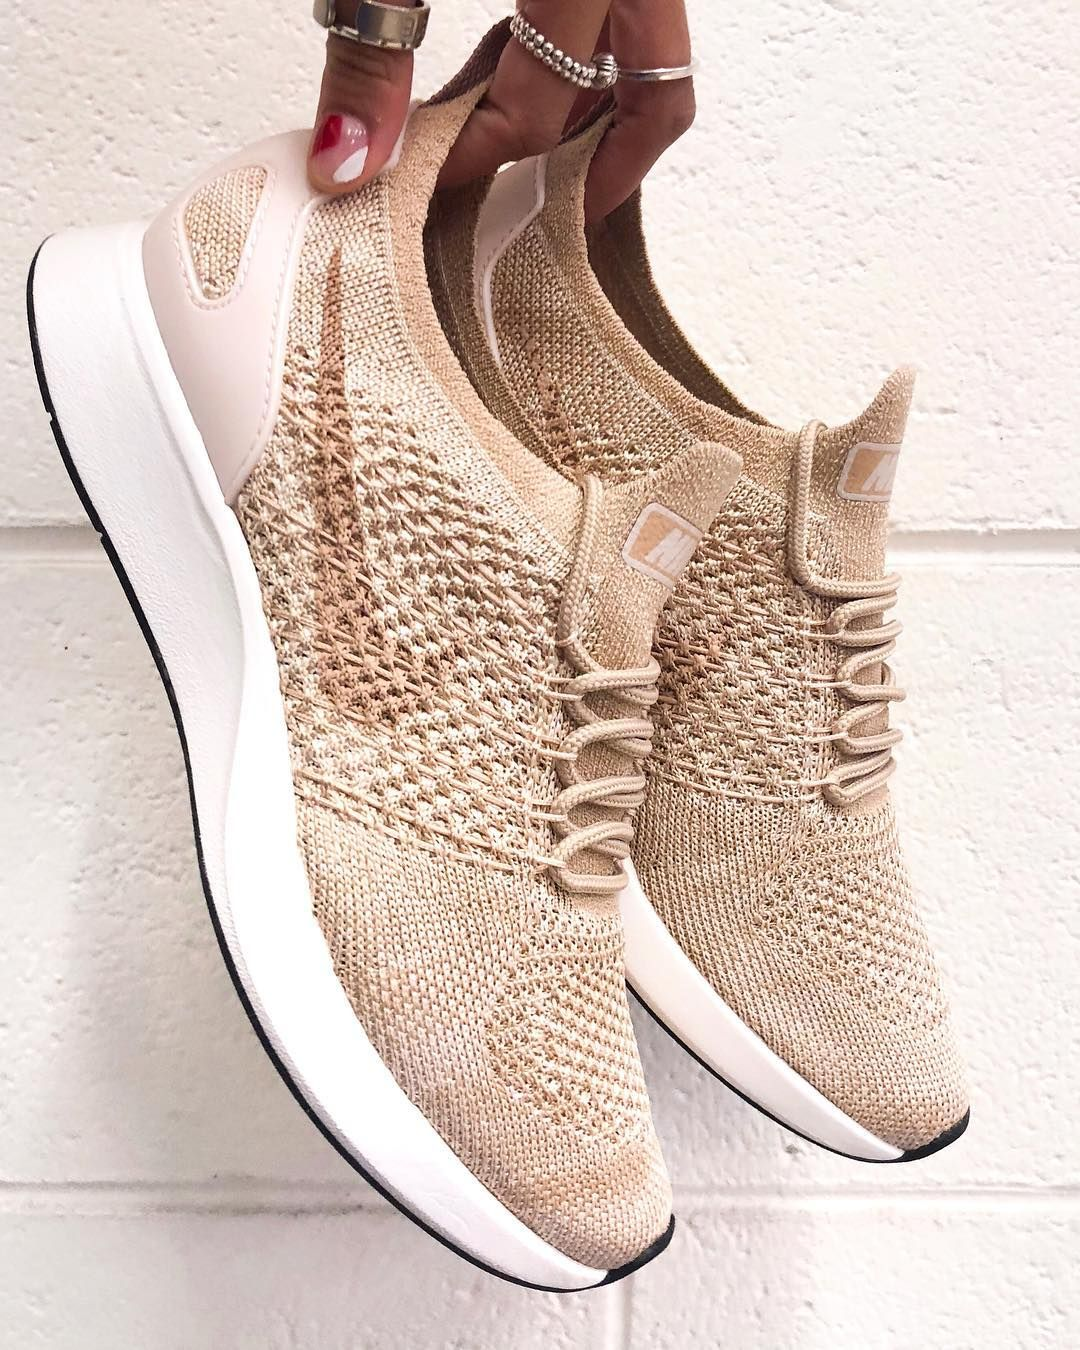 Nike Air Zoom Mariah Flyknit Racer Beige White Sportstylist Beige Shoes Outfit Tan Nike Shoes Stylish Sneakers